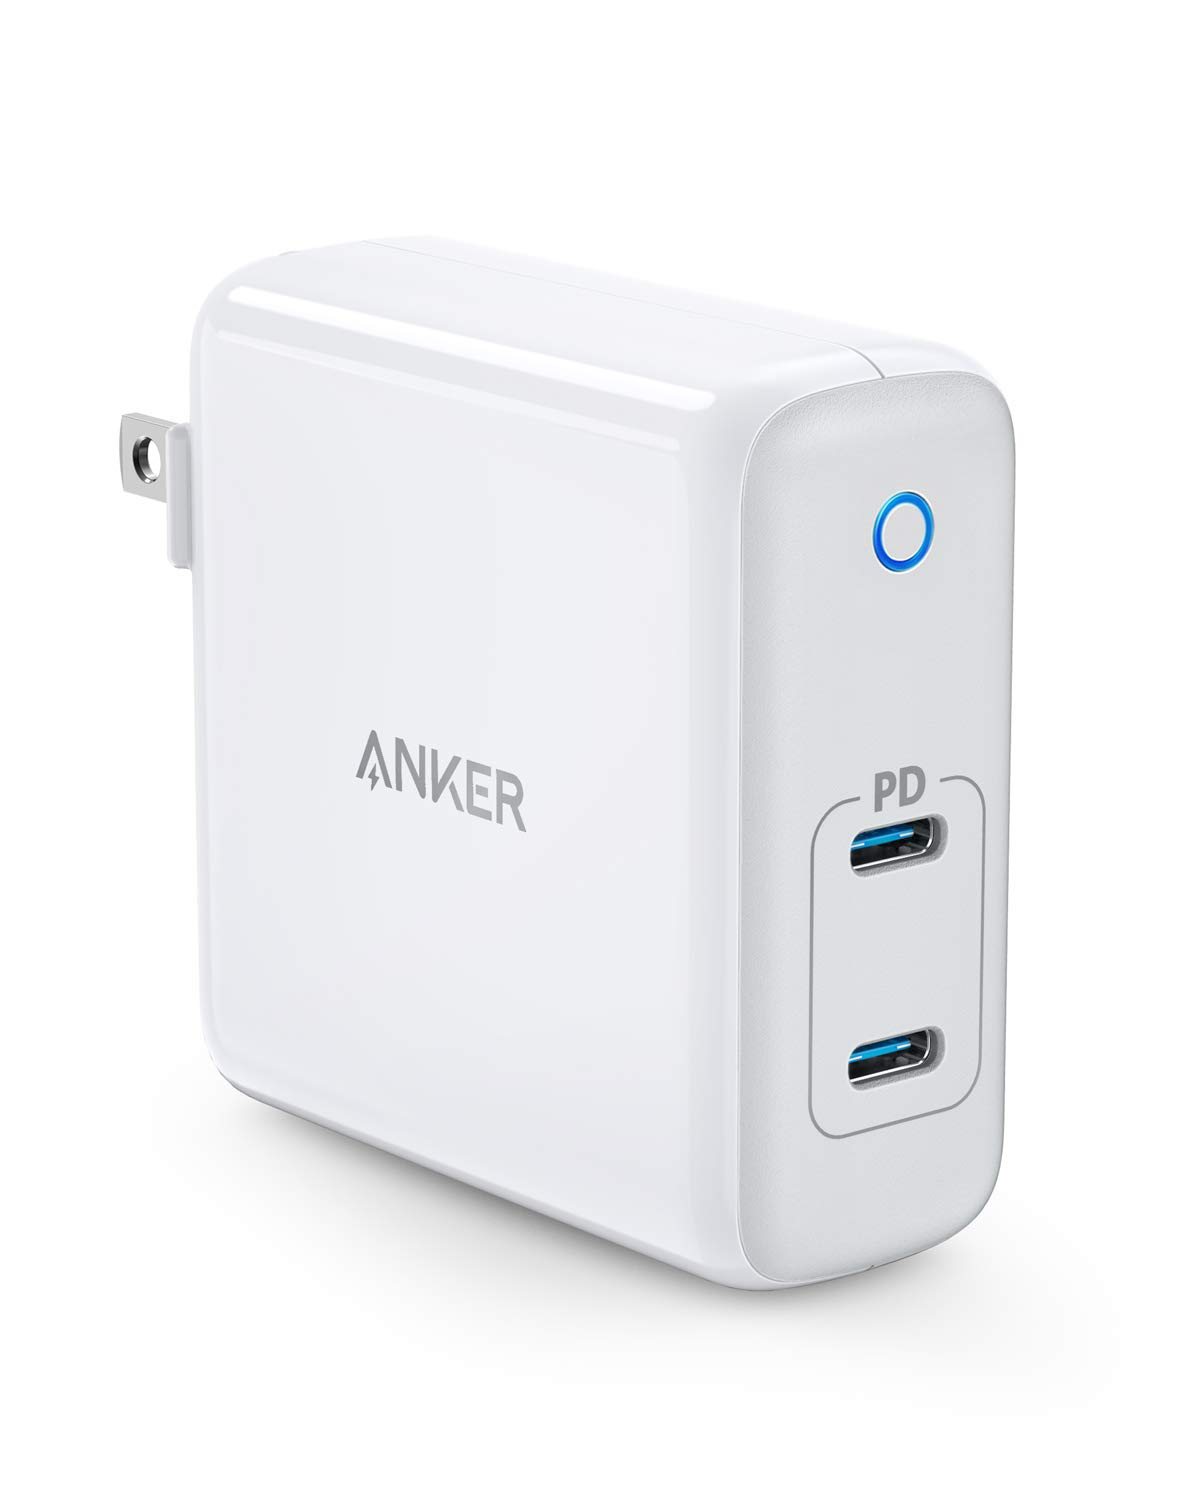 Anker 60W 2-Port USB C Charger, PowerPort Atom PD 2 [GaN Tech] Ultra Compact Foldable Type C Wall Charger, Power Delivery for MacBook Pro/Air, iPad Pro, iPhone XR/XS/Max/X/8, Pixel, Galaxy, and More by Anker